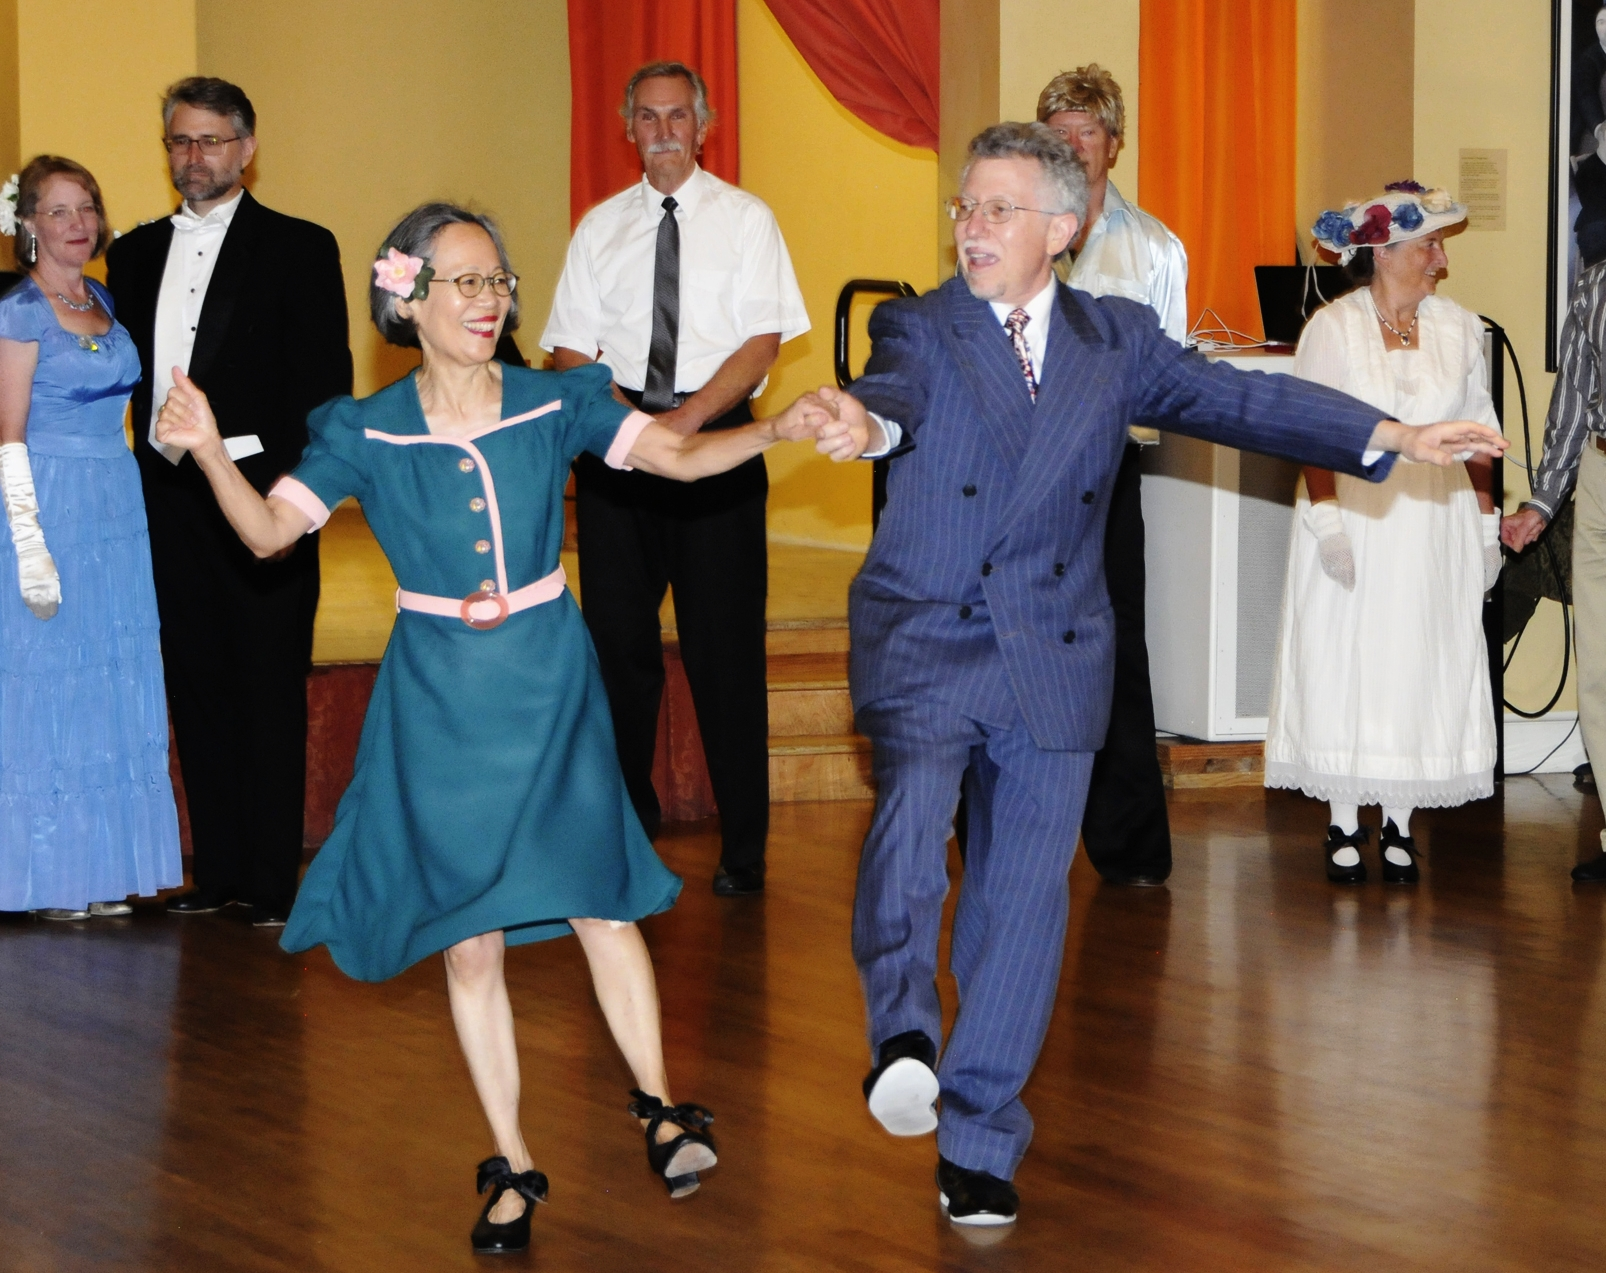 Watch Your Step: Dancing Through the Decades